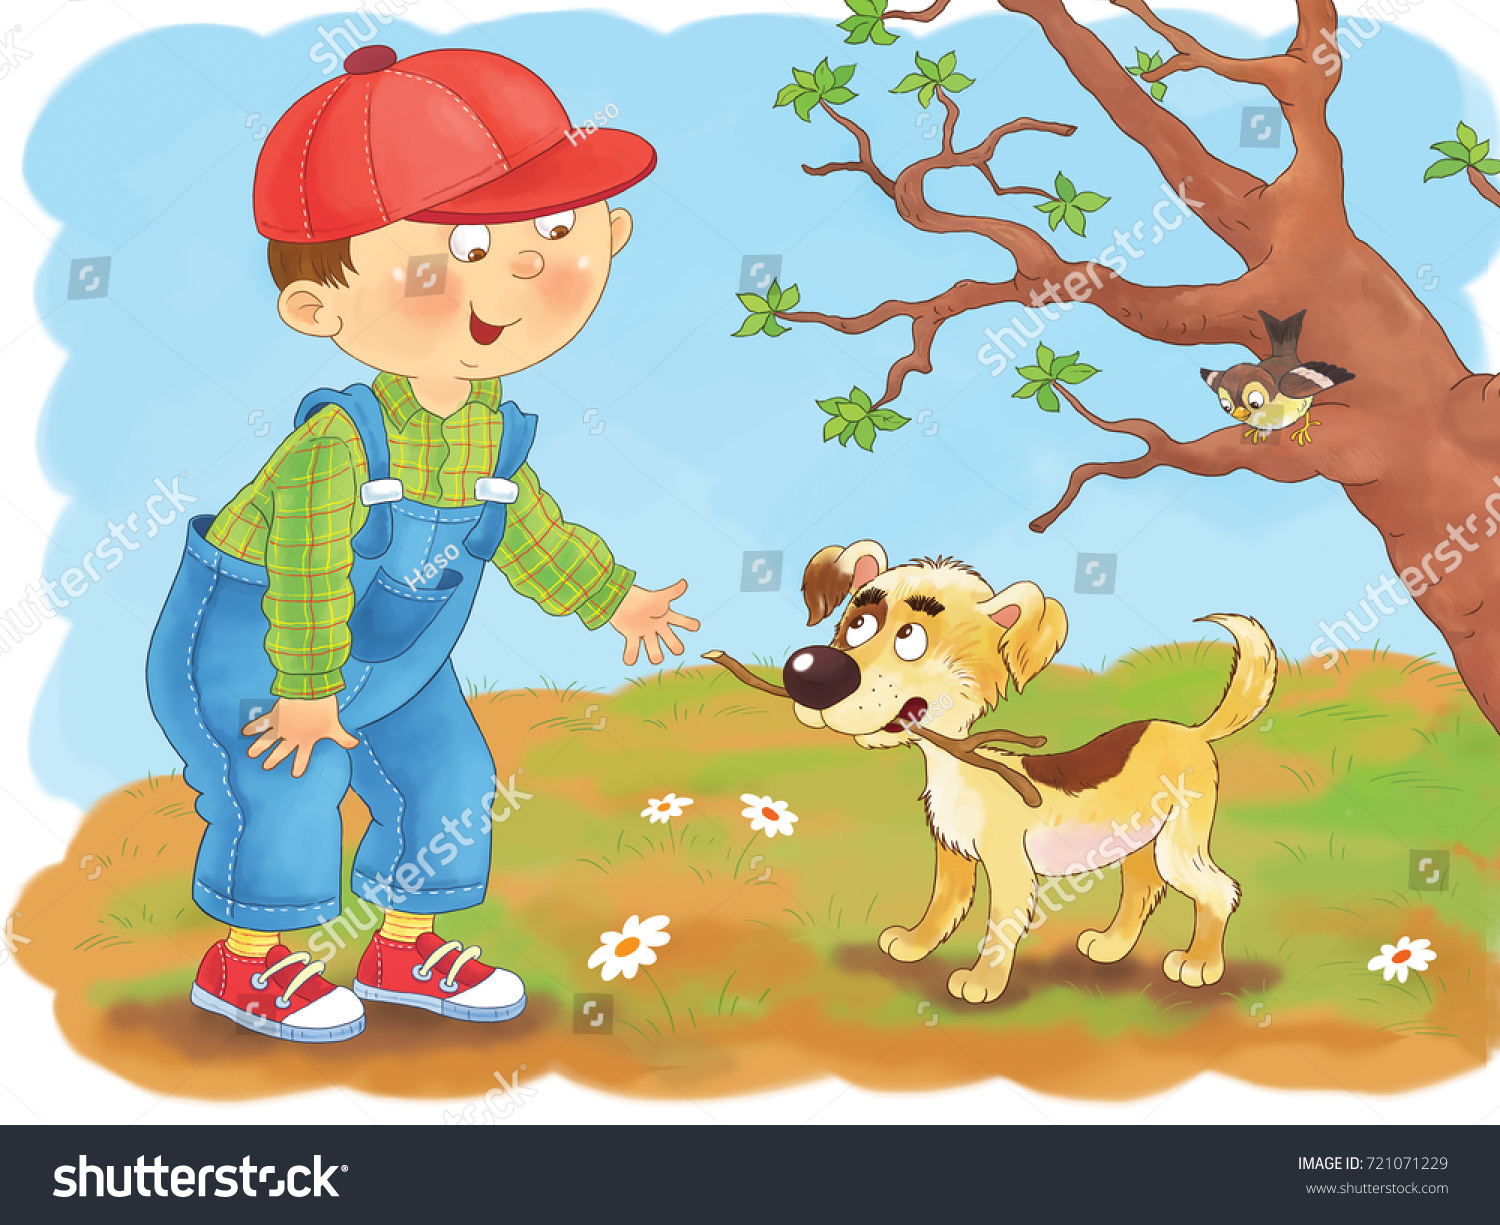 A Cute Boy And His Dog Playing Outdoors In Spring Coloring Page